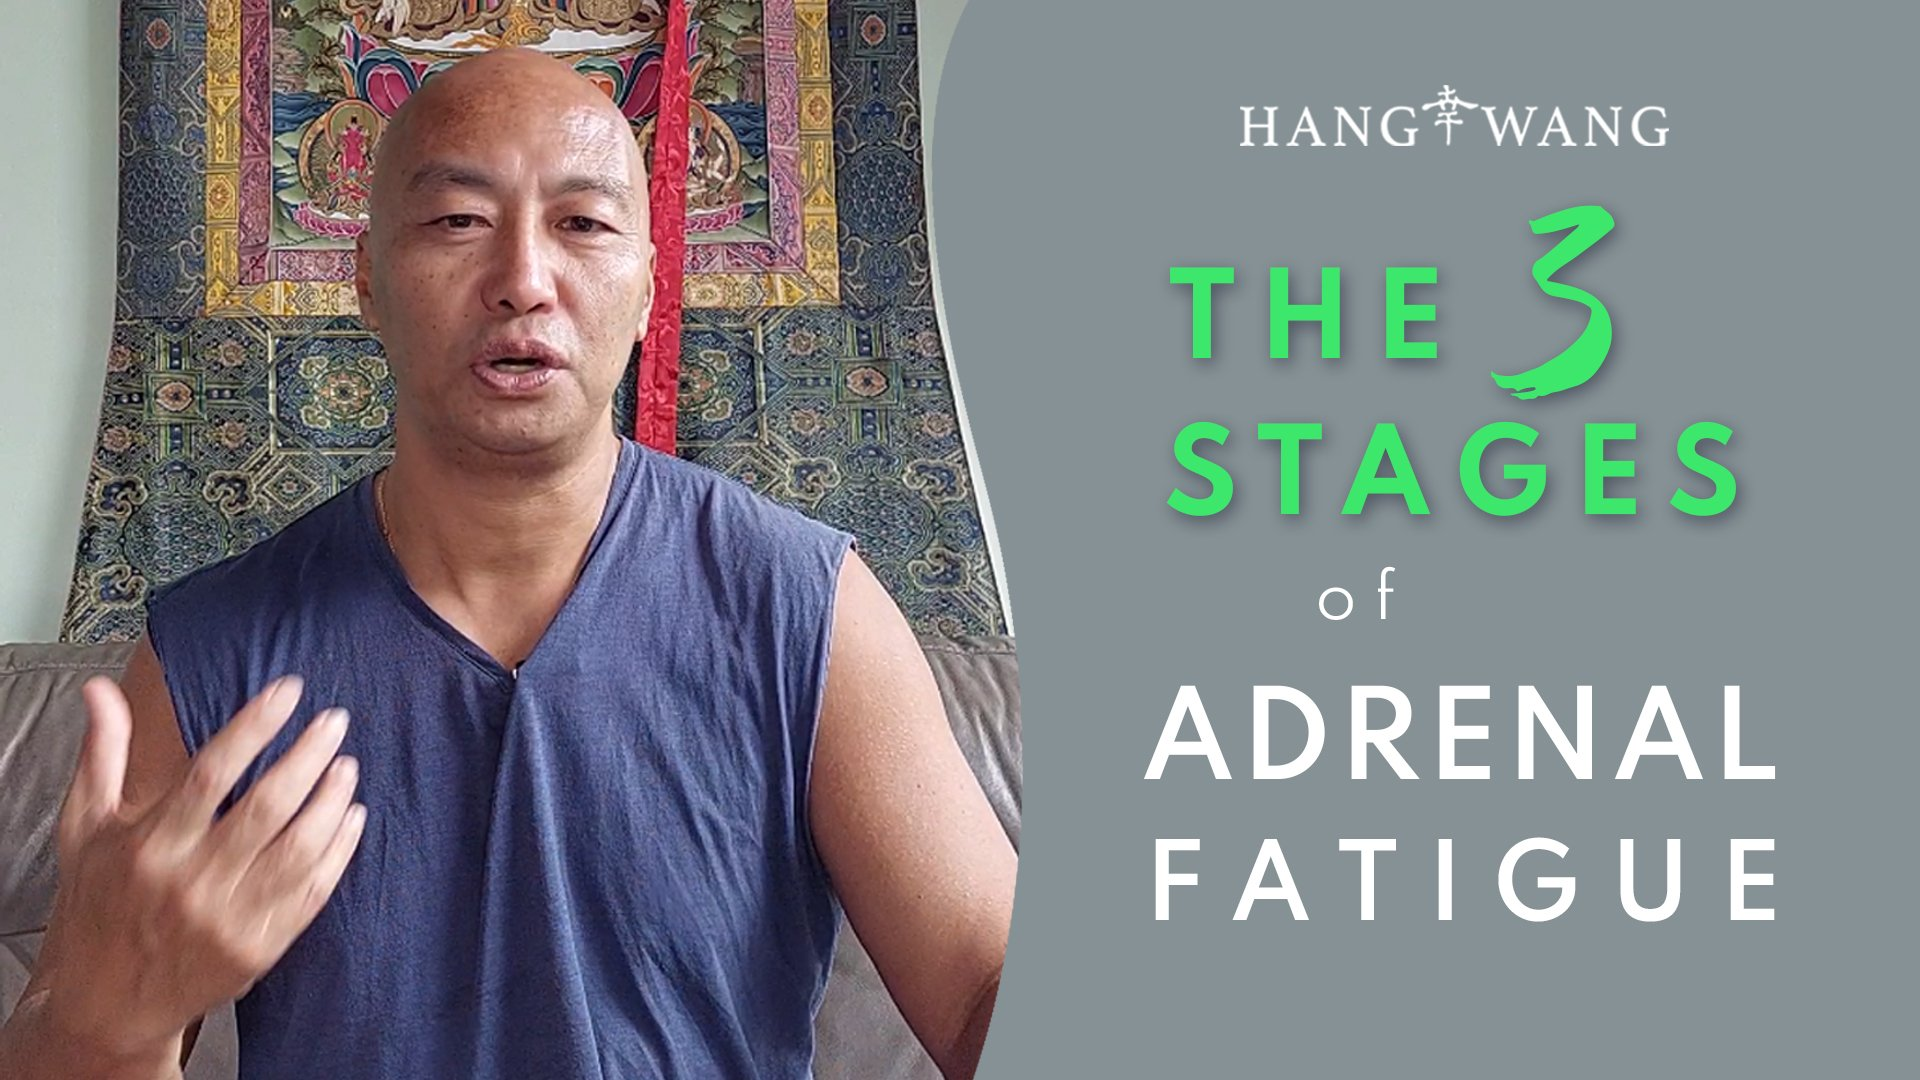 The Three Stages of Adrenal Fatigue